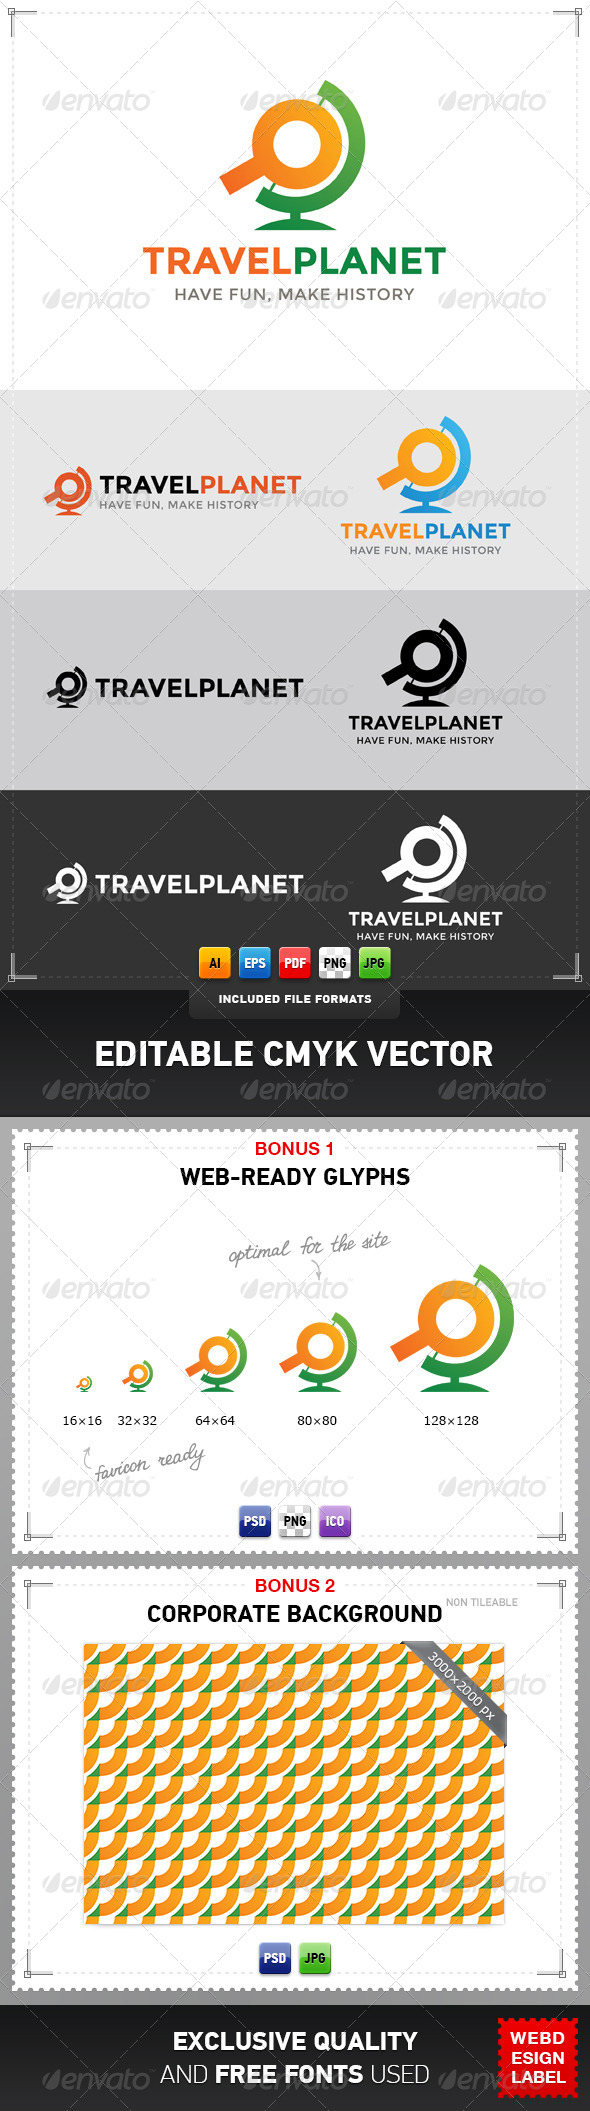 GraphicRiver Travel Planet Logo 4821719